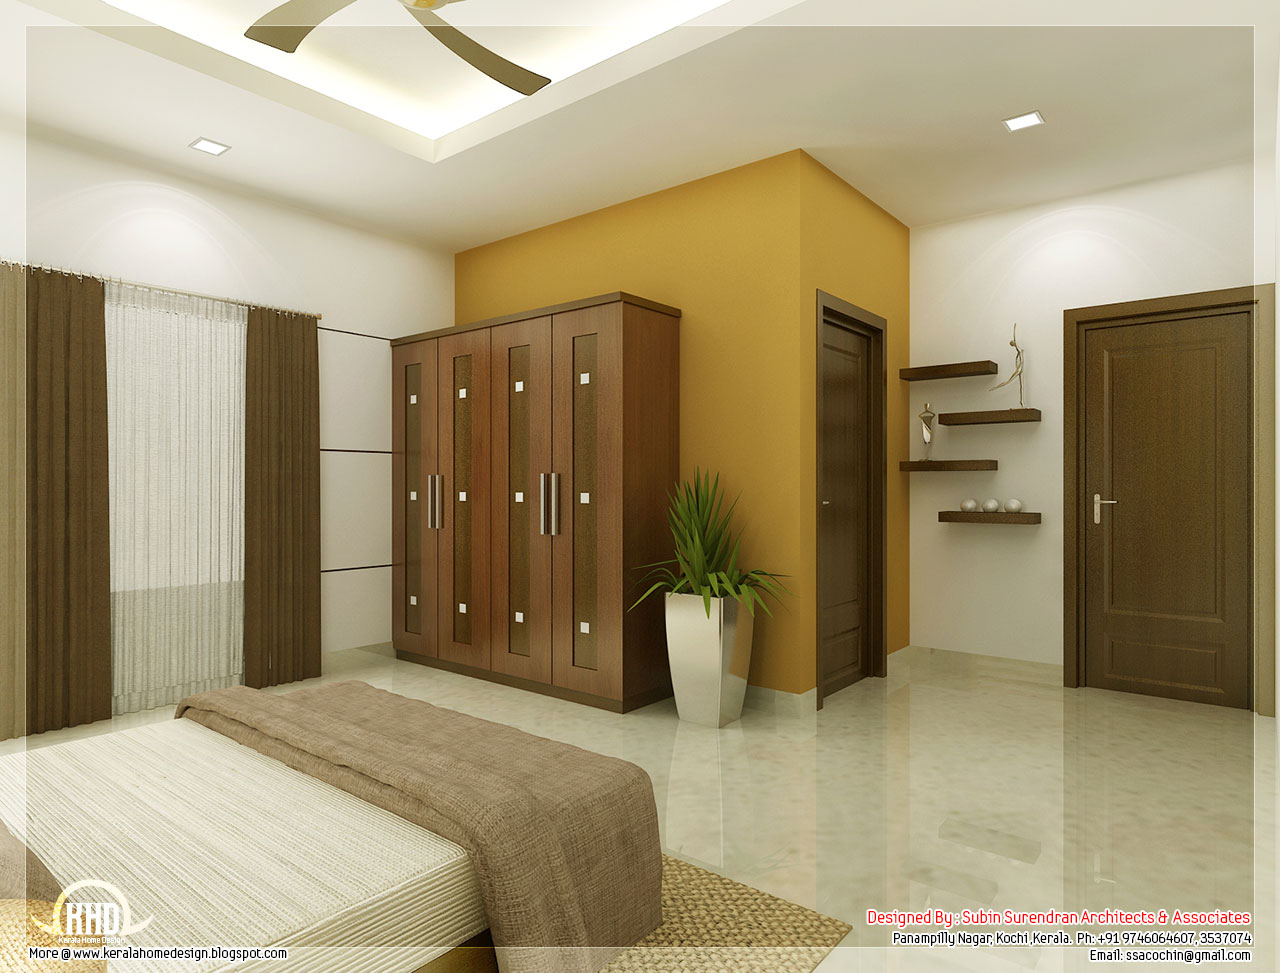 Beautiful bedroom interior designs kerala house design for Interior designs for bedrooms ideas